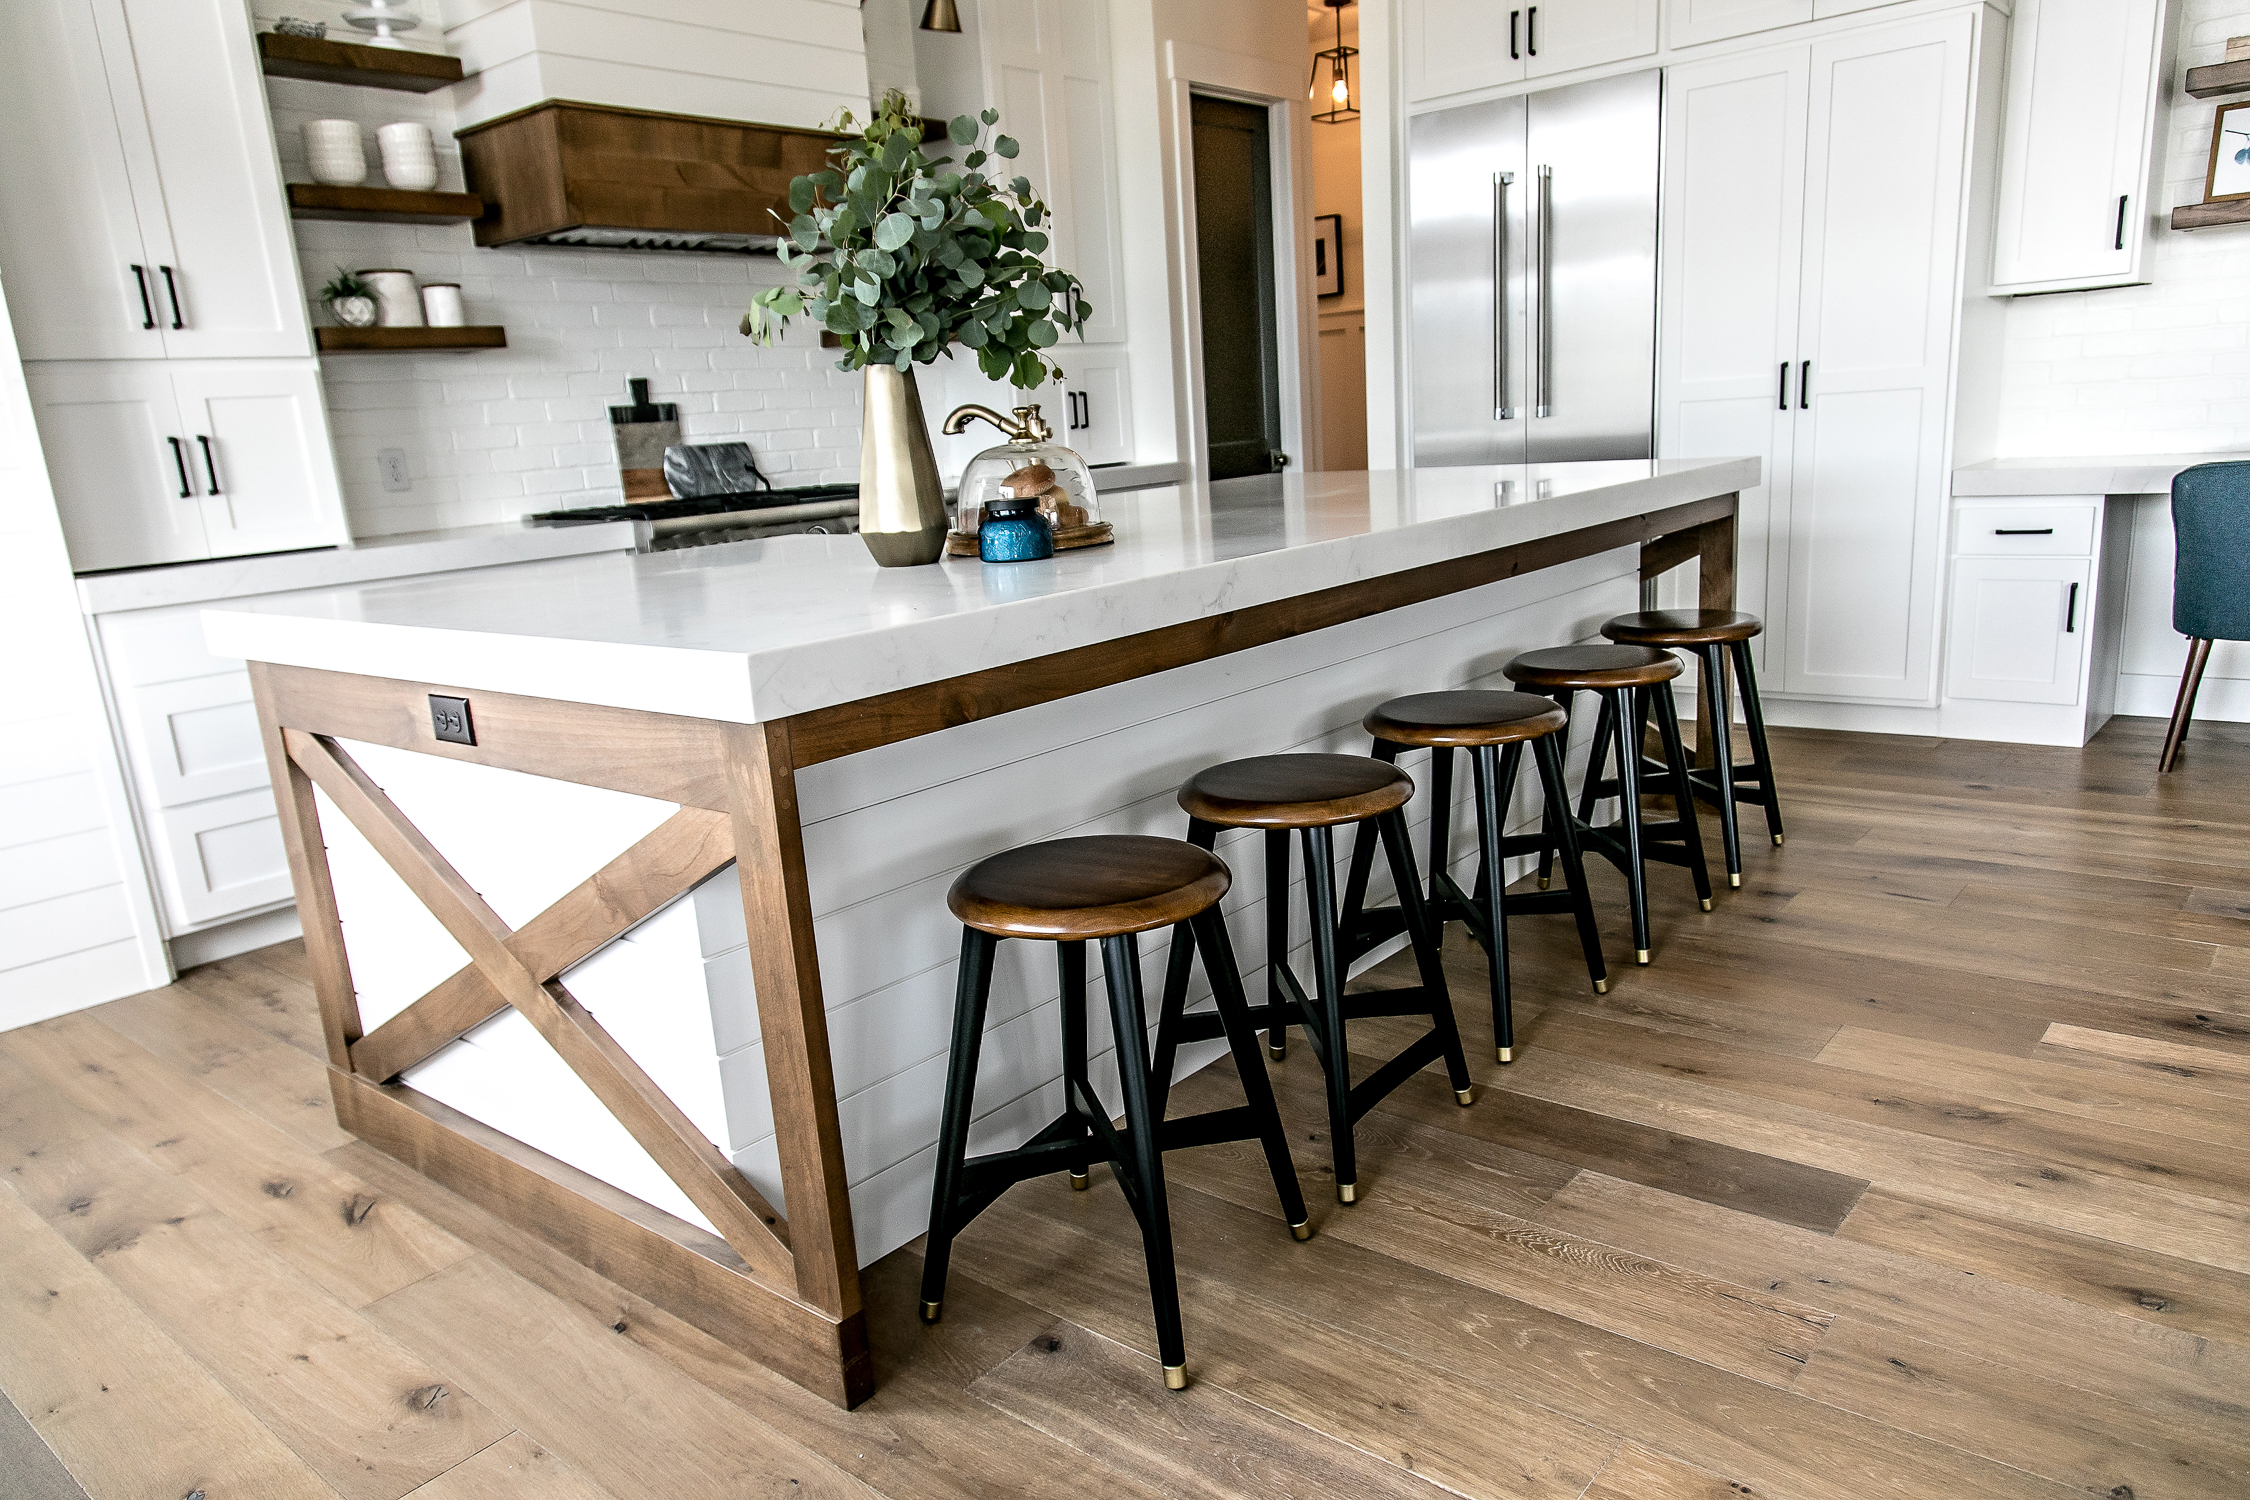 Modern Farmhouse Kitchen Smi Modern Farmhouse Kitchen And Dining Nook  Sita Montgomery